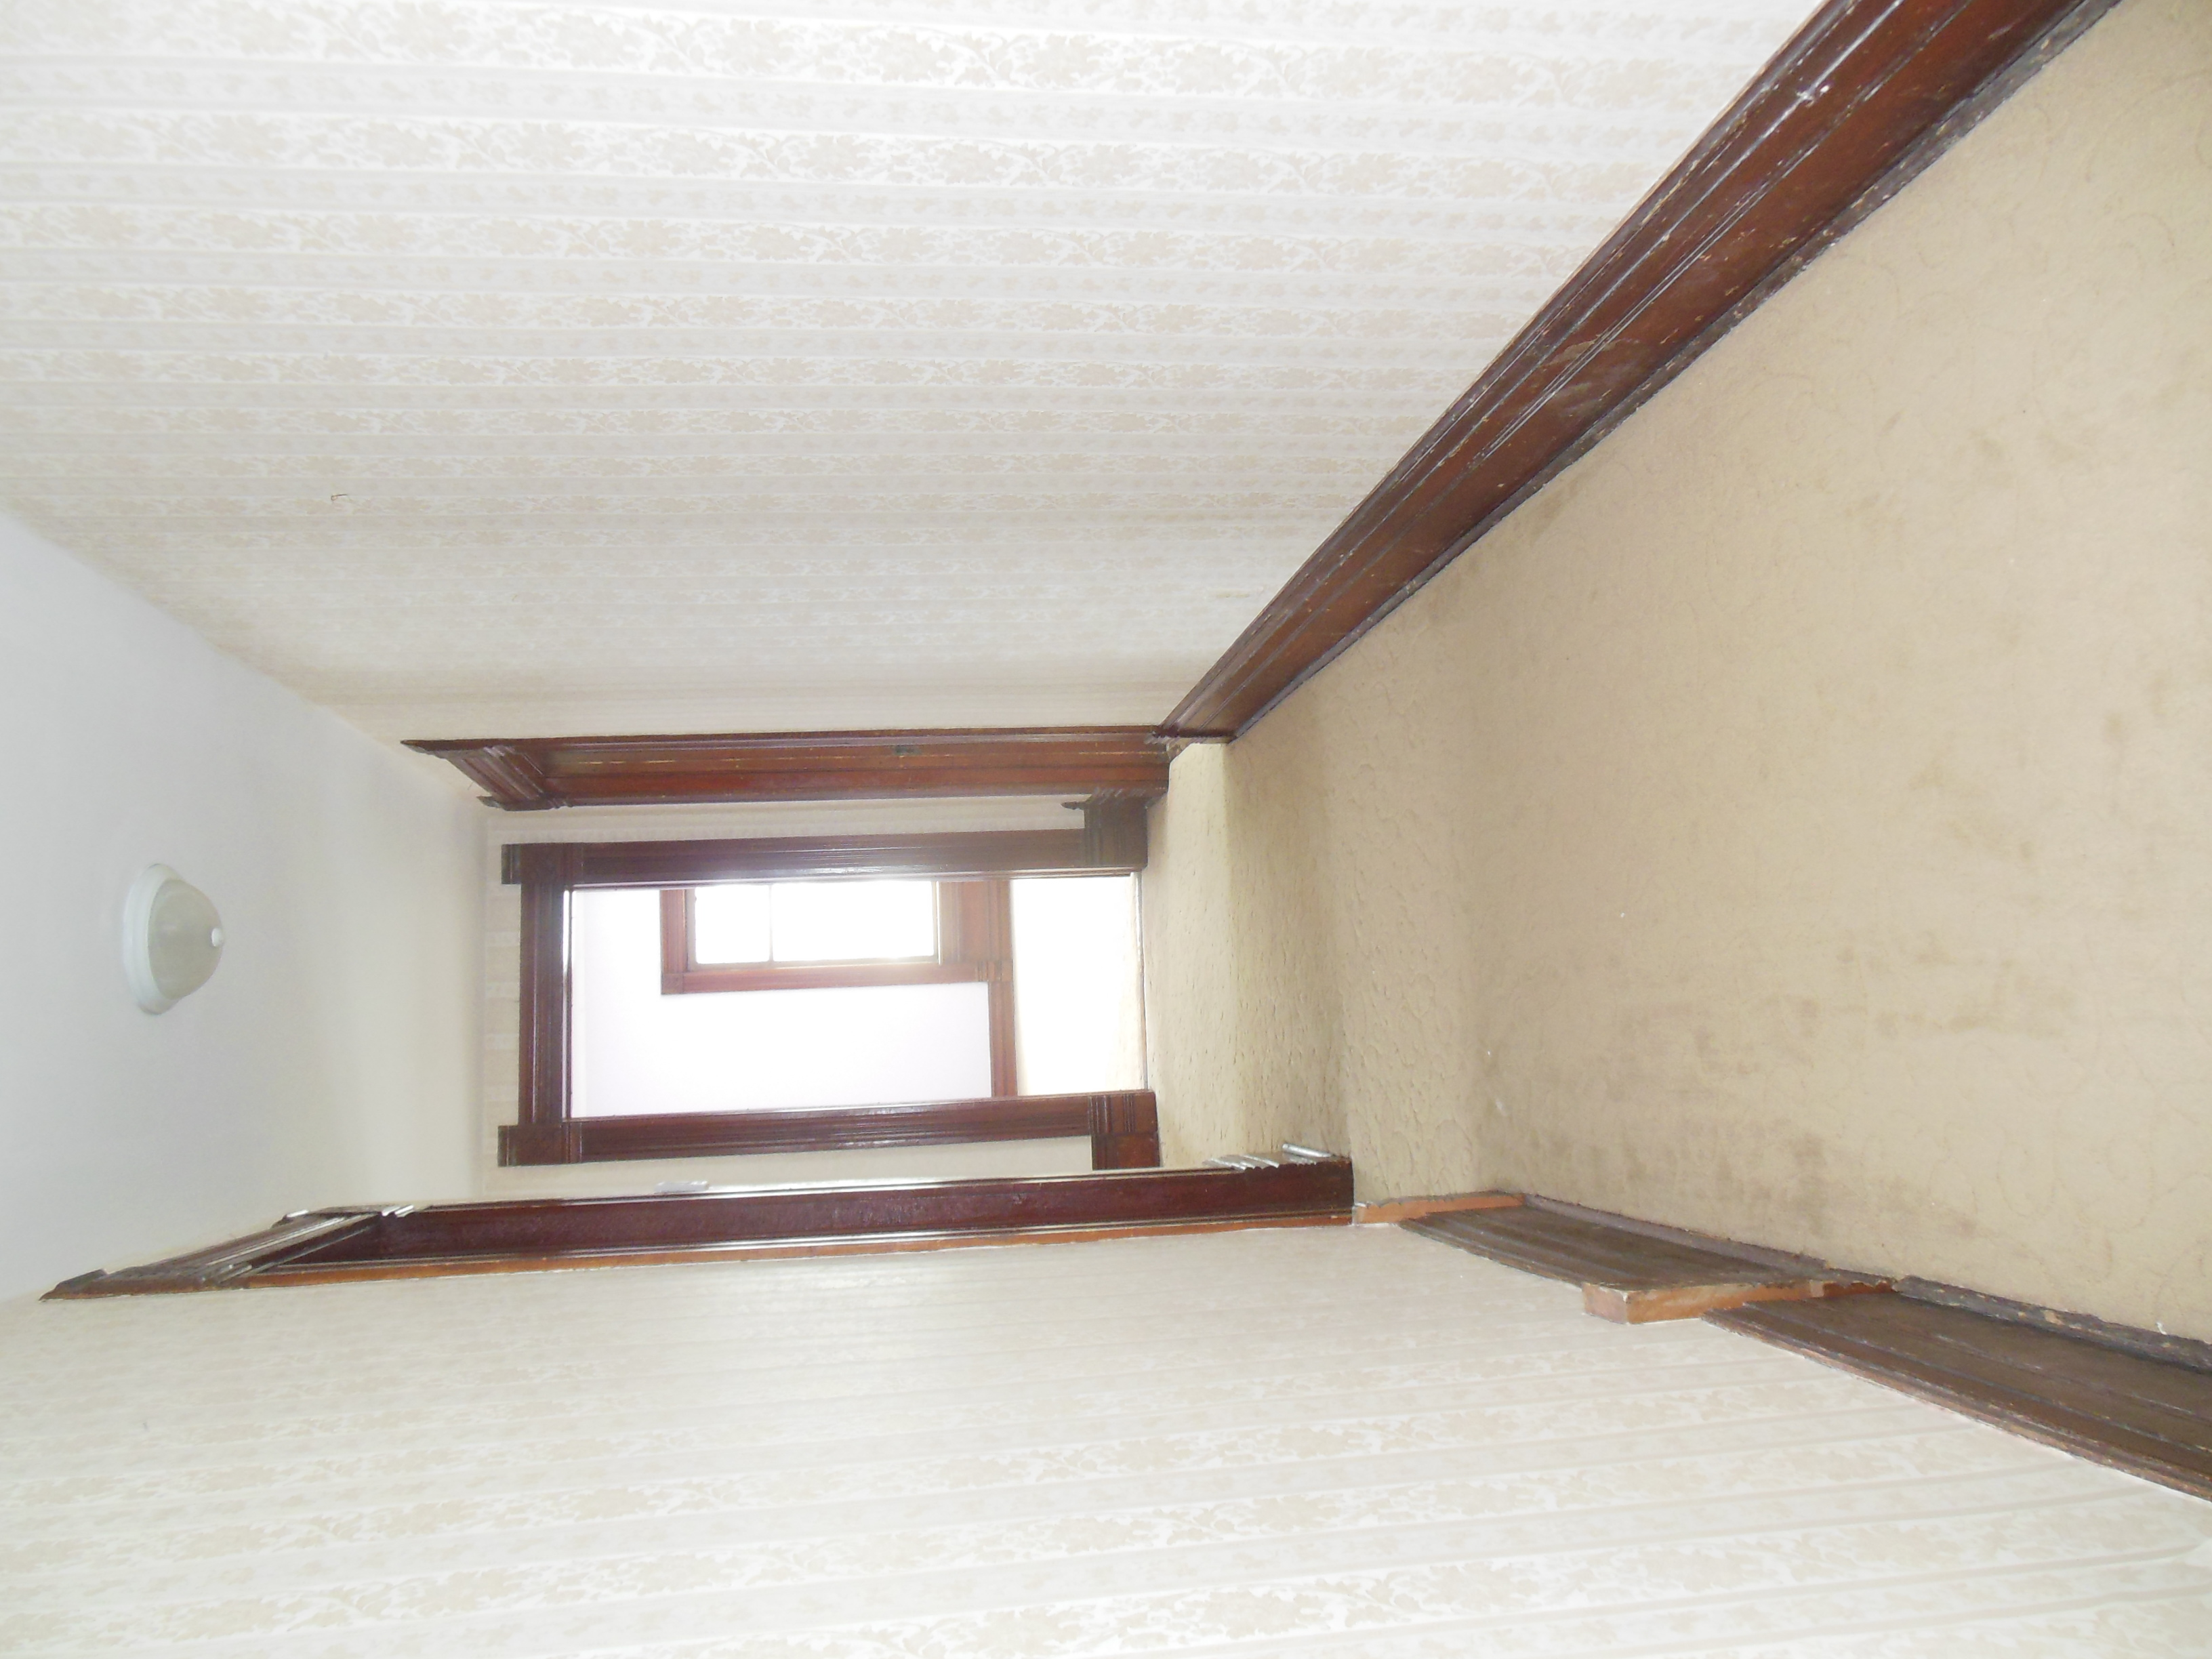 509 Normal, Upstairs hall